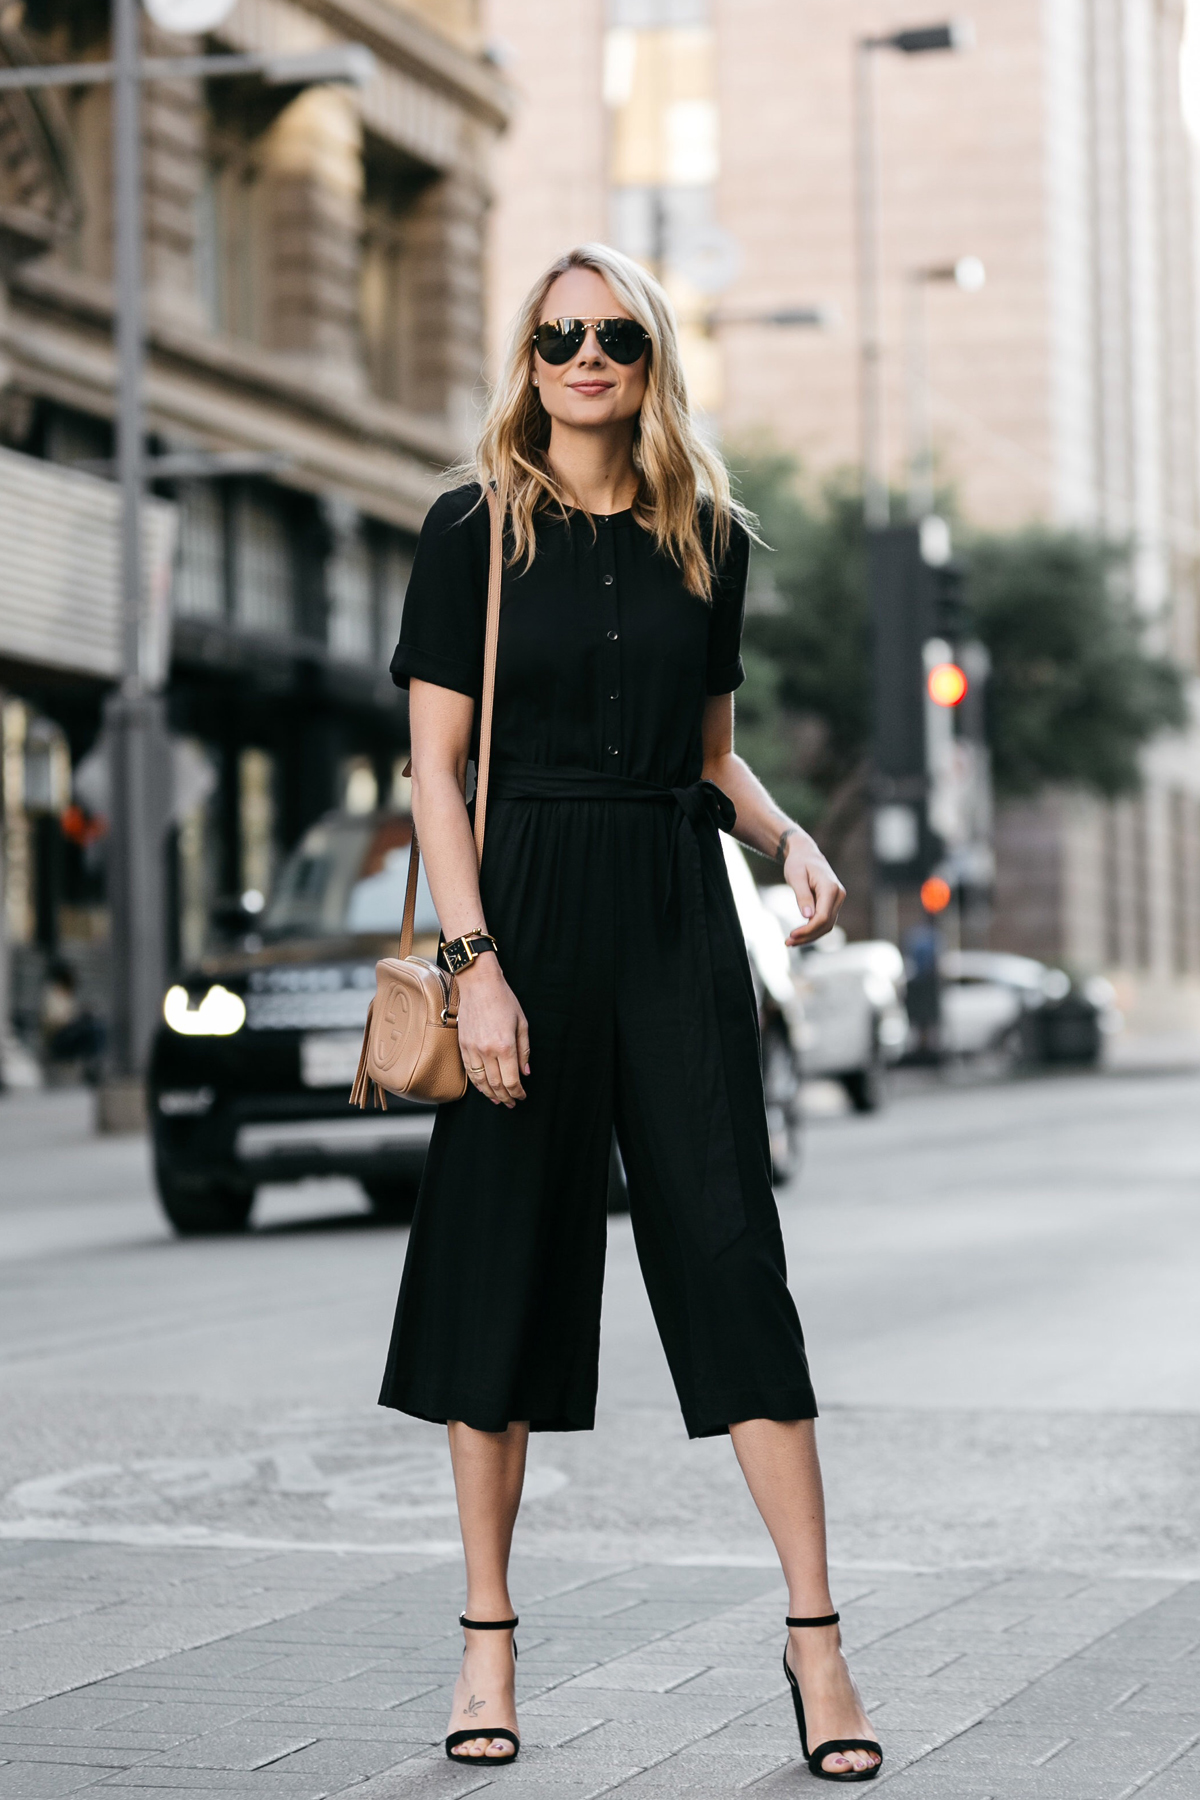 Fashion Jackson, Dallas Blogger, Fashion Blogger, Street Style, Ann Taylor Culotte Black Jumpsuit, Steve Madden Carrson Heeled Sandals, Black Ankle Strap Sandals, Gucci Soho Disco Handbag